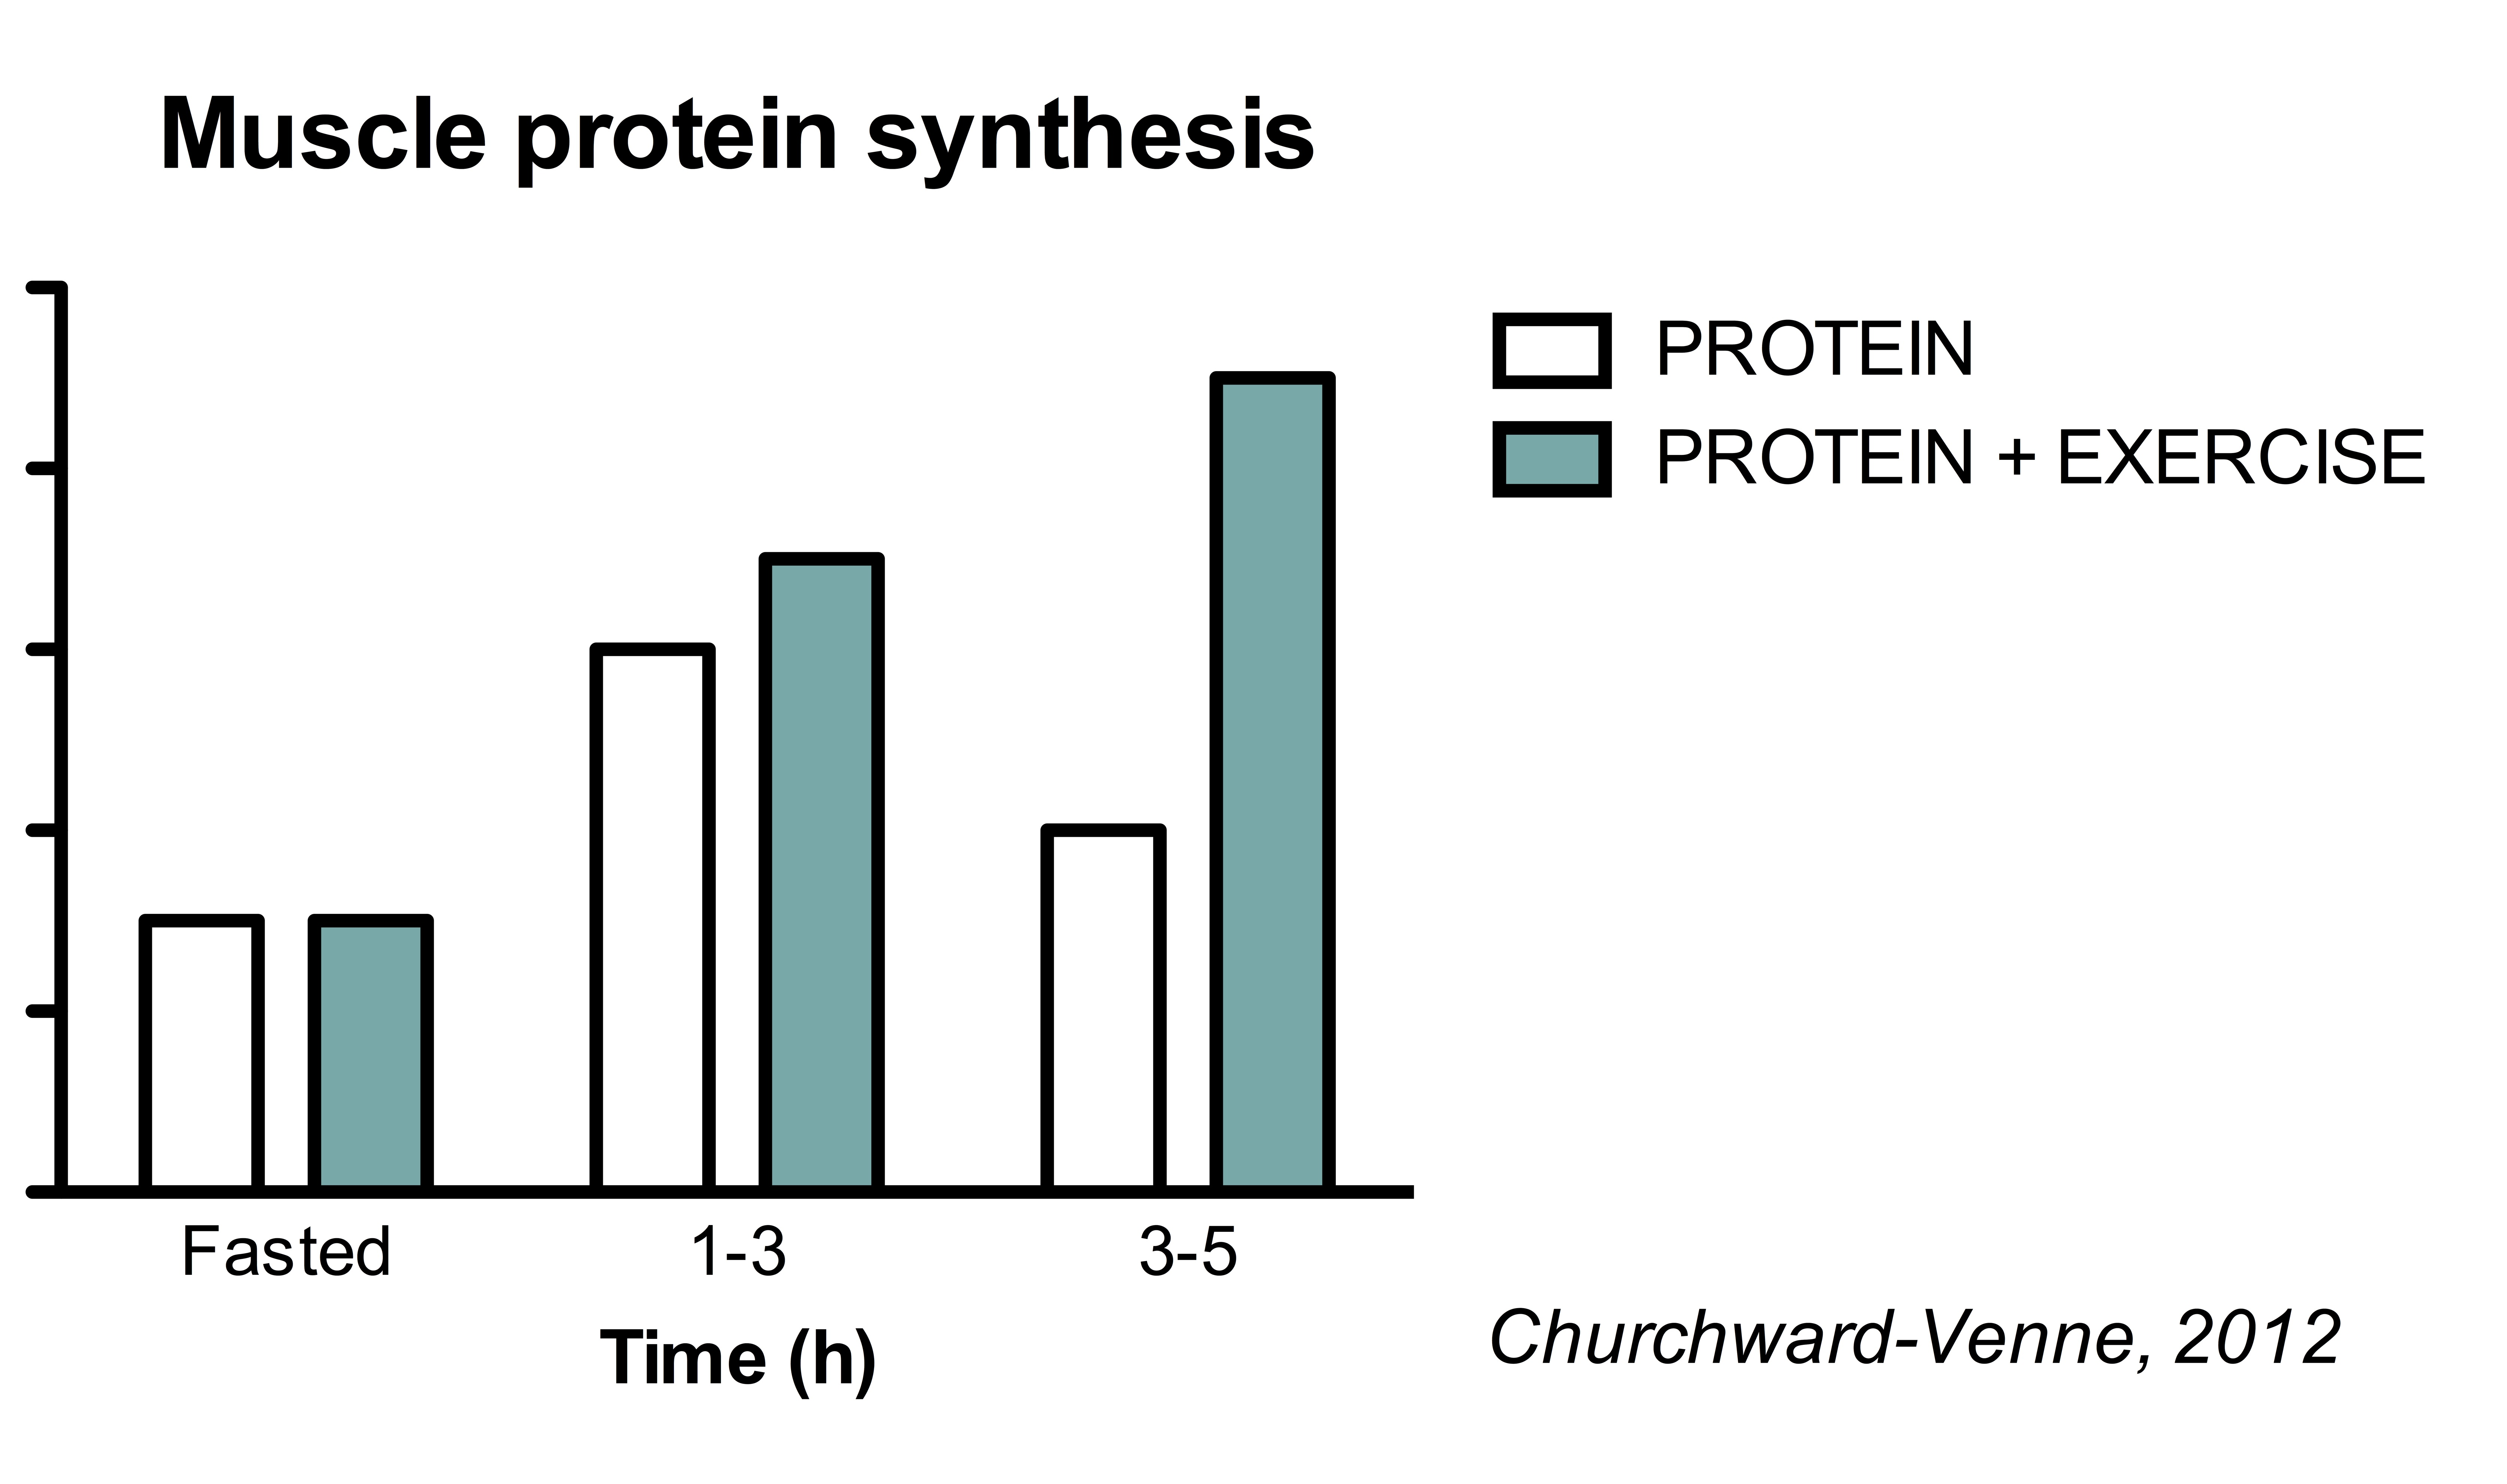 protien systhesis